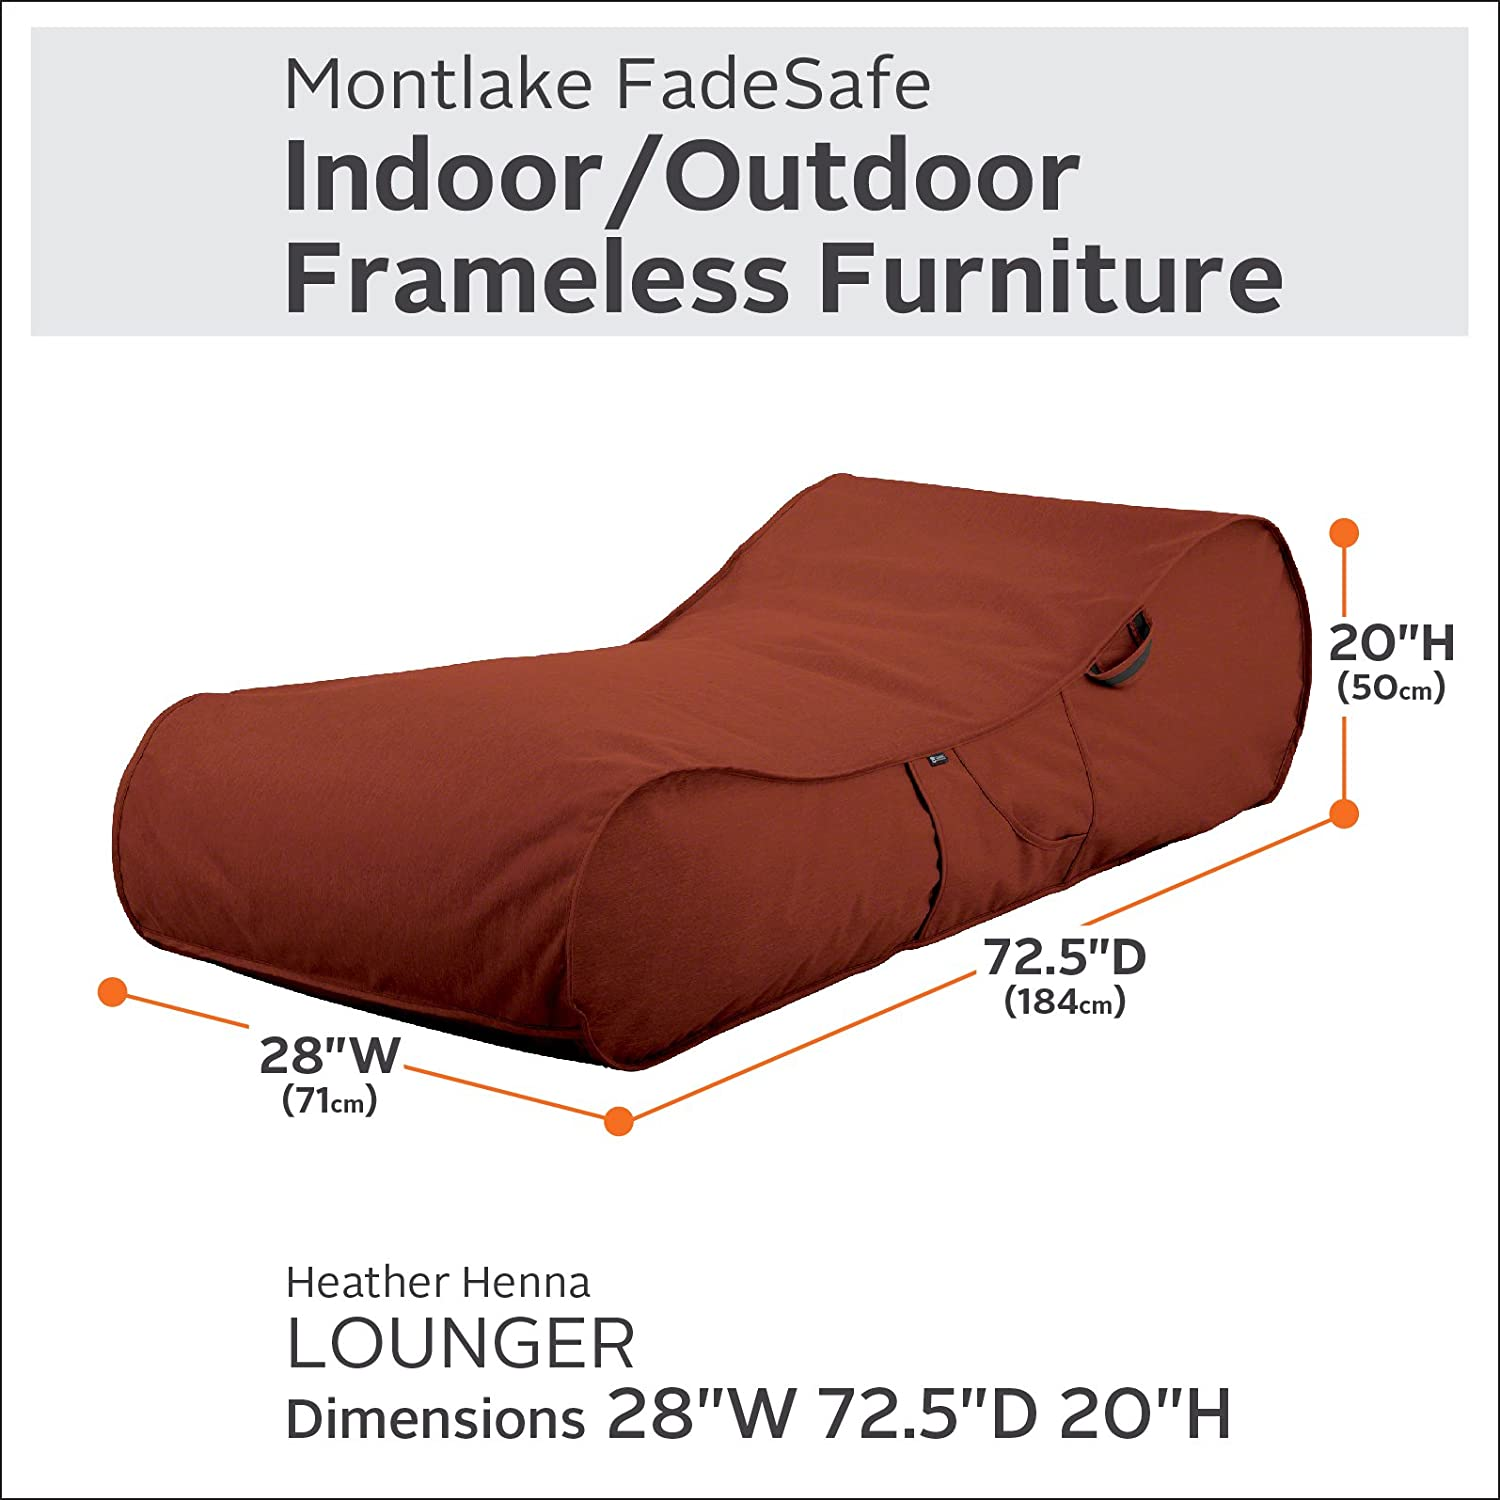 Classic Accessories Montlake FadeSafe Frameless Furniture Indoor Outdoor Bean Bag Lounger, Red